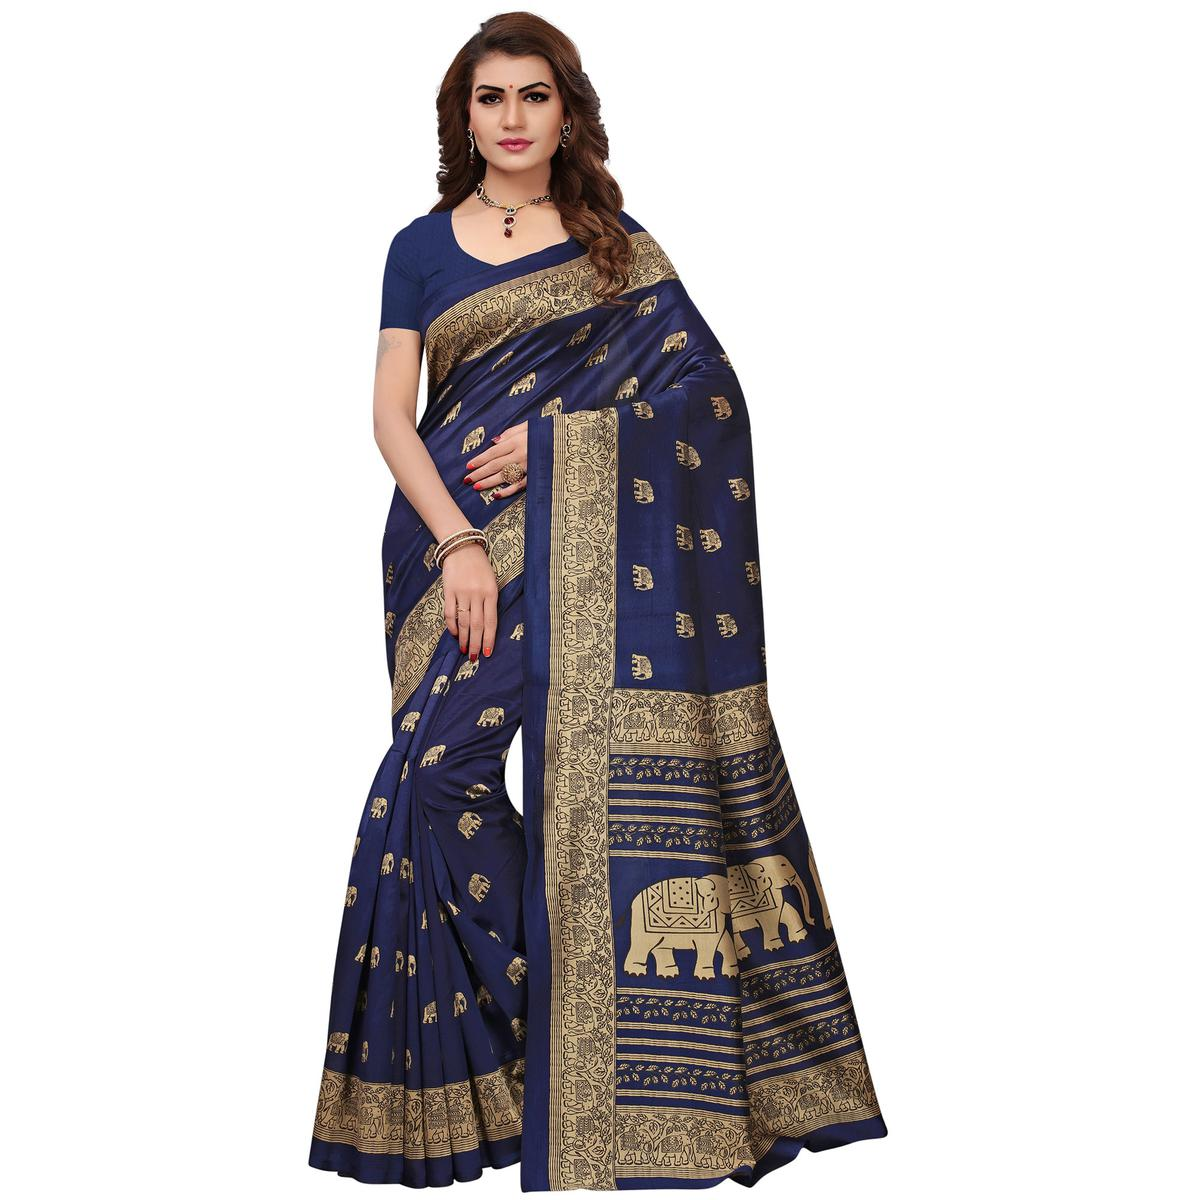 Demanding Navy Blue Colored Printed Festive Wear Mysore Art Silk Saree